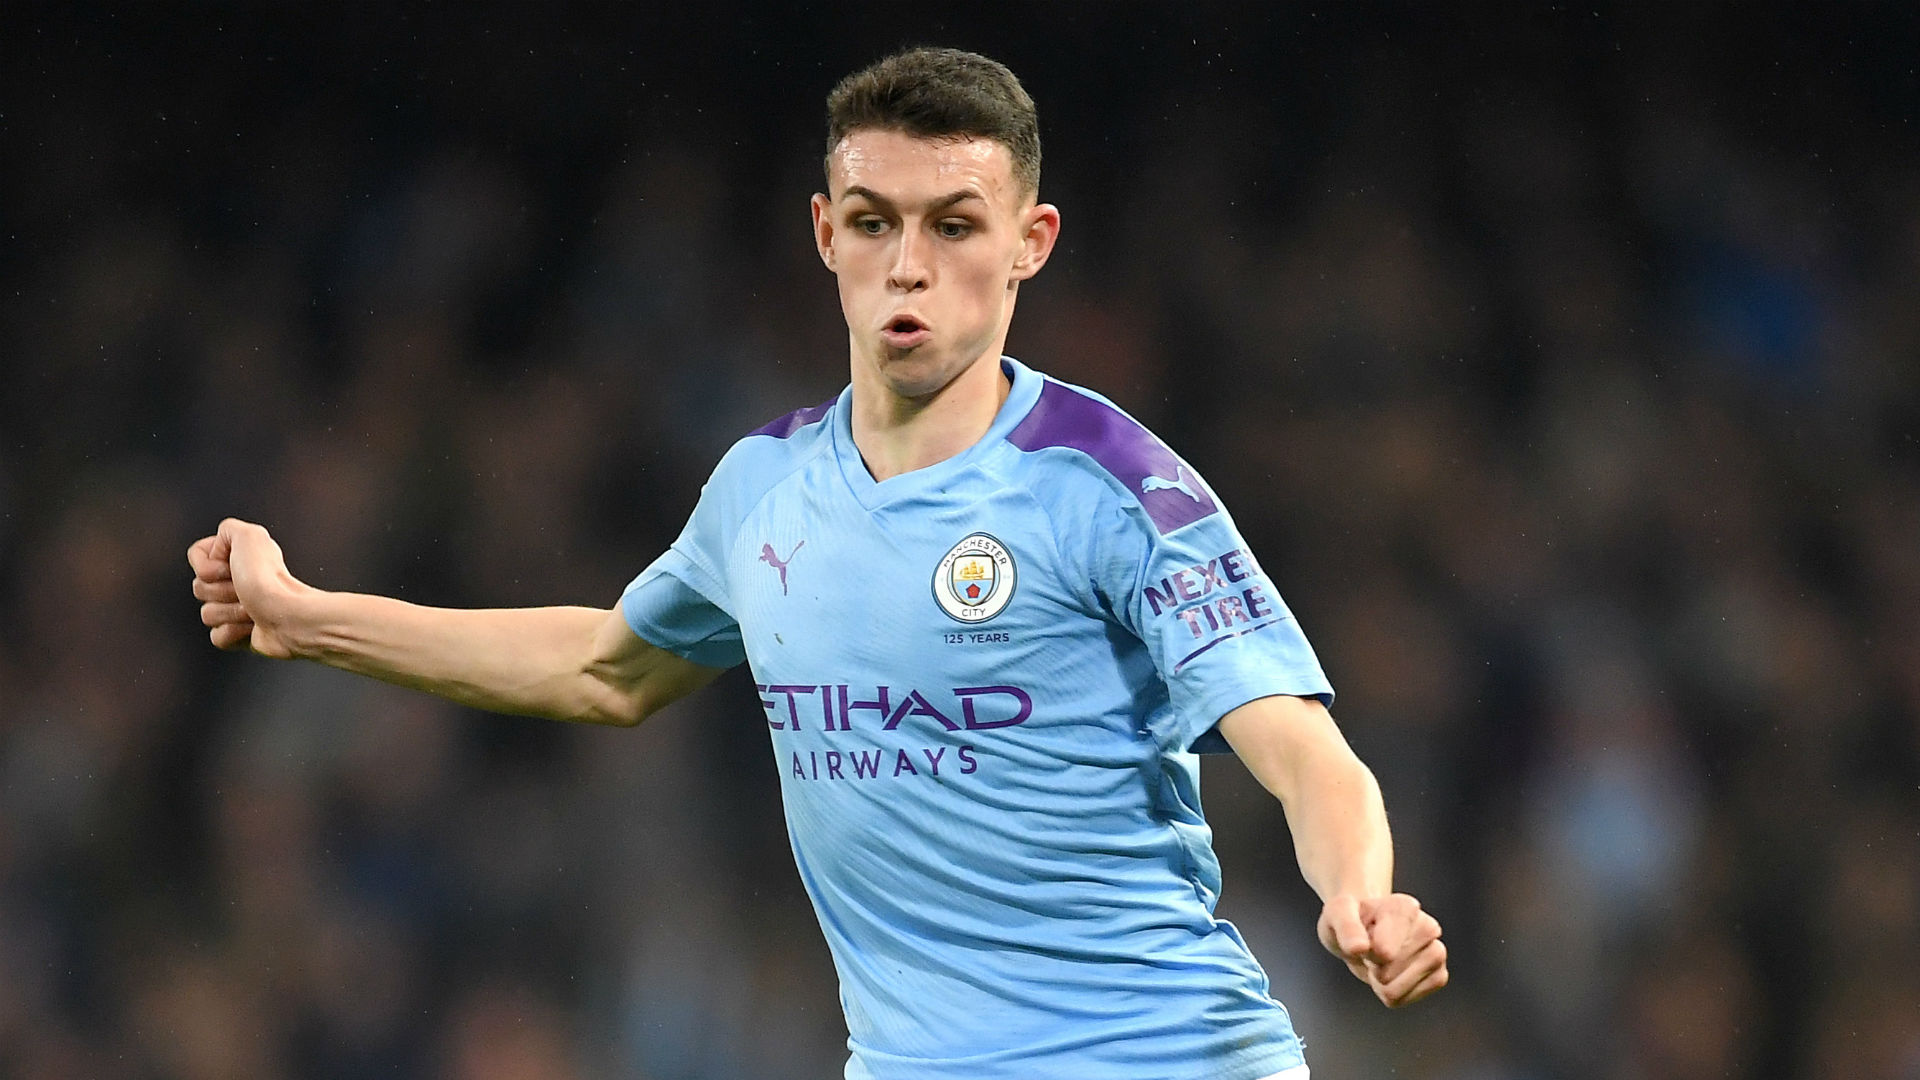 Guardiola backs Foden to become heartbeat of City team after Silva departs